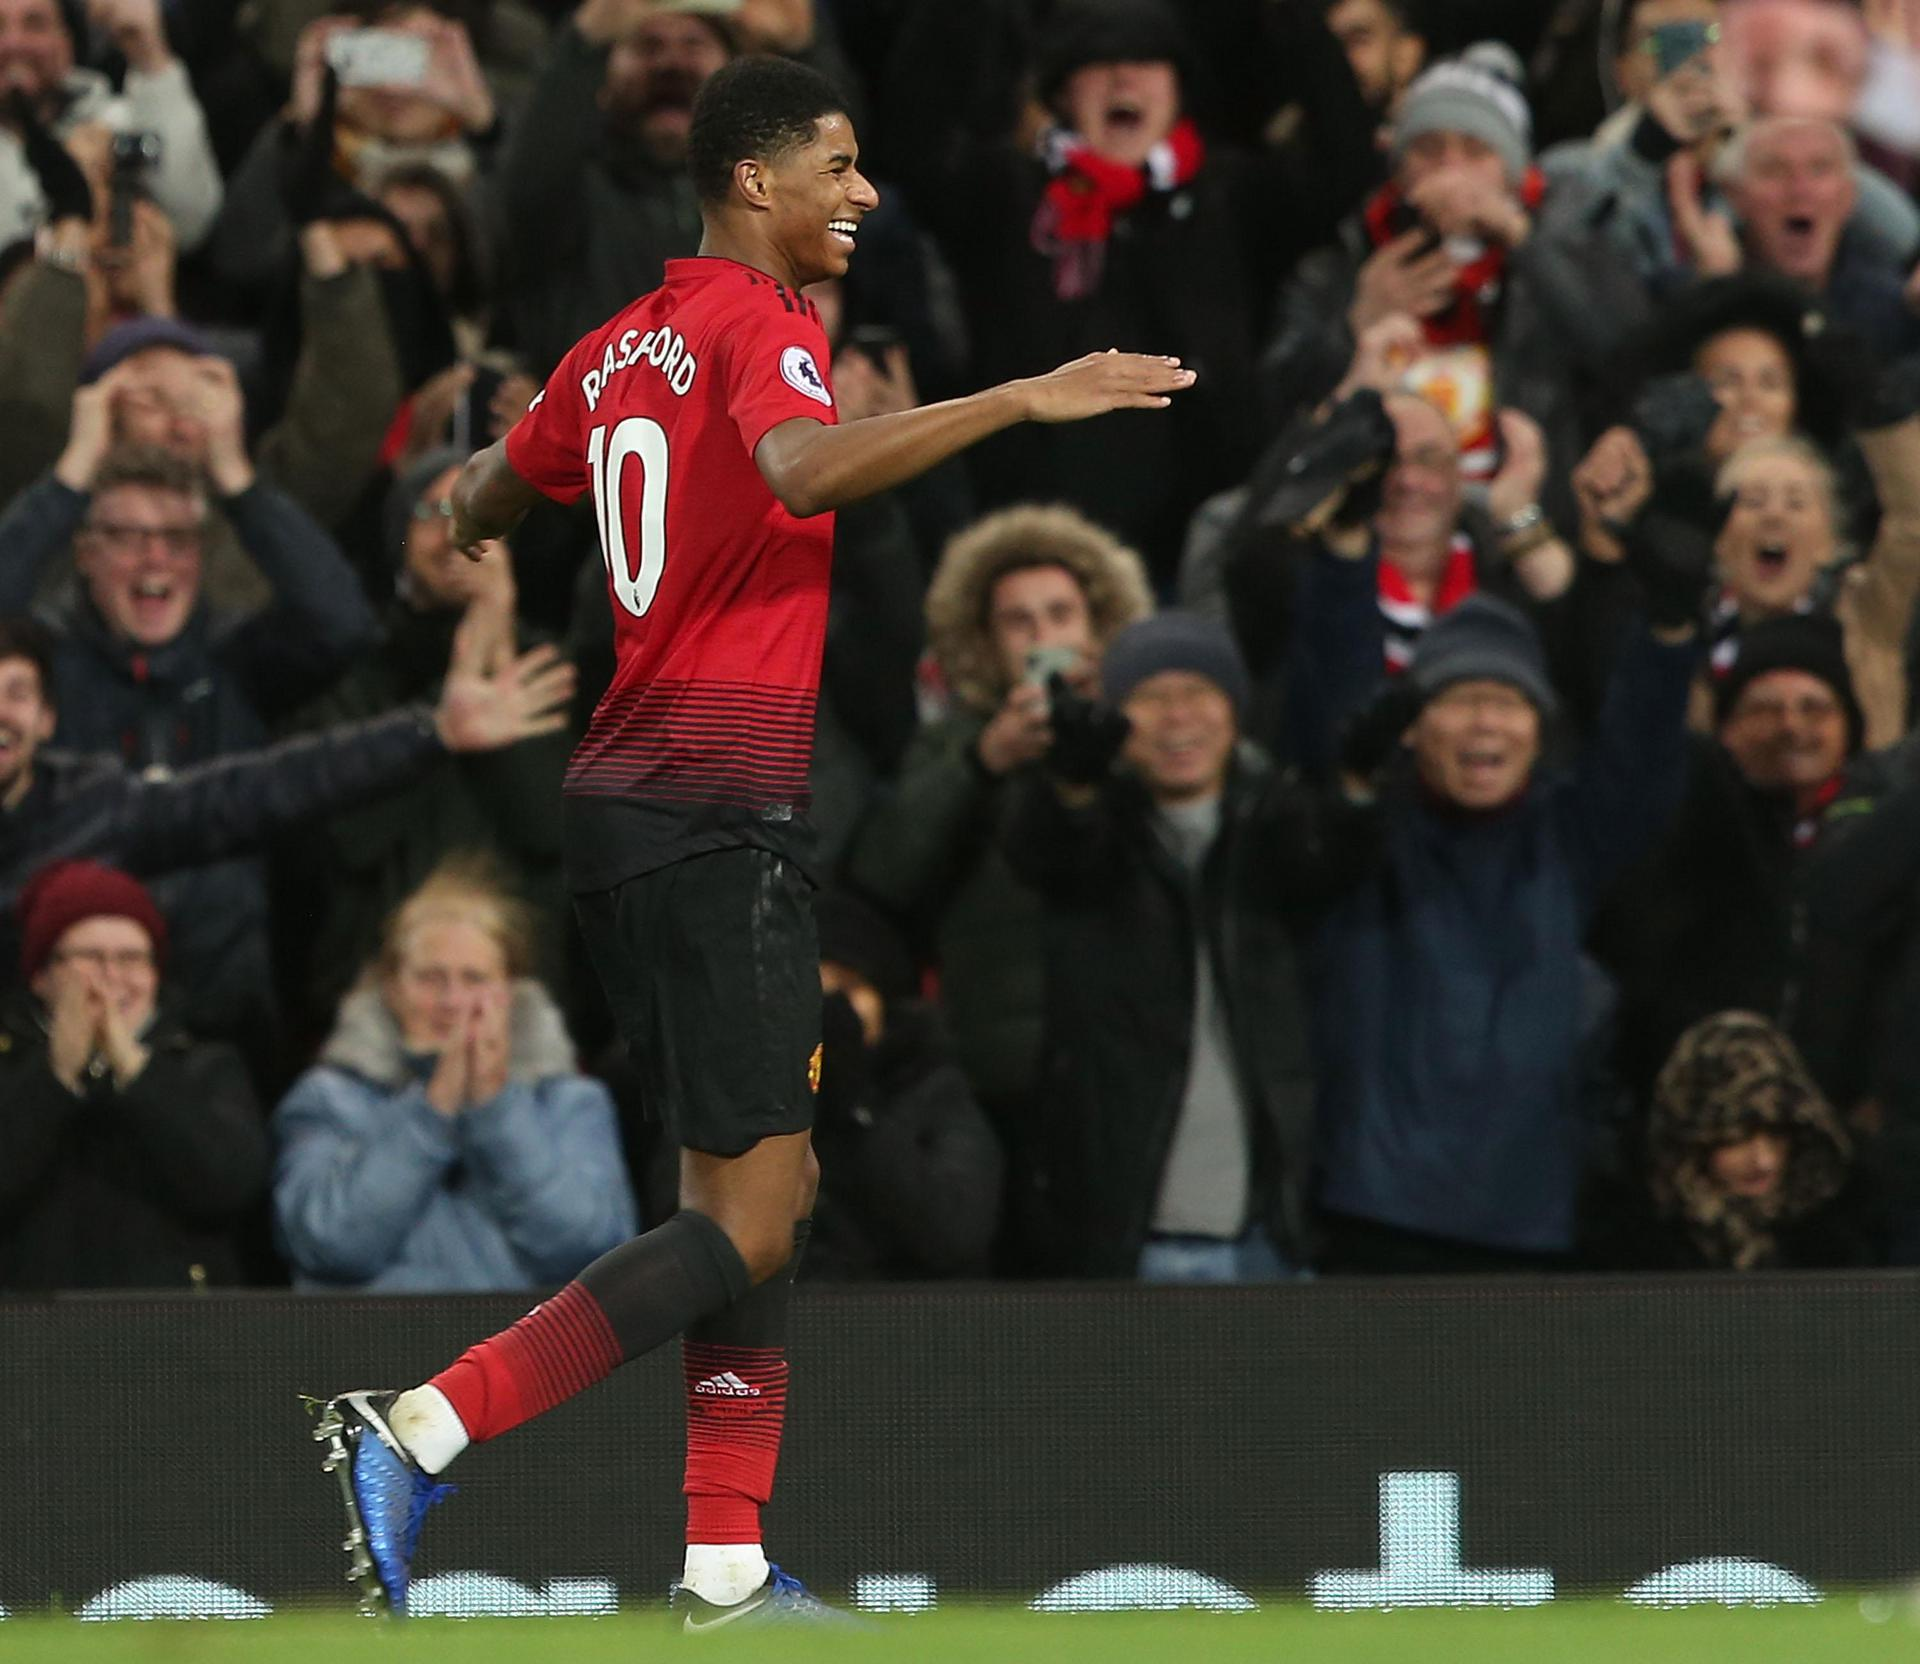 Marcus Rashford celebrates with the fans after scoring against Fulham